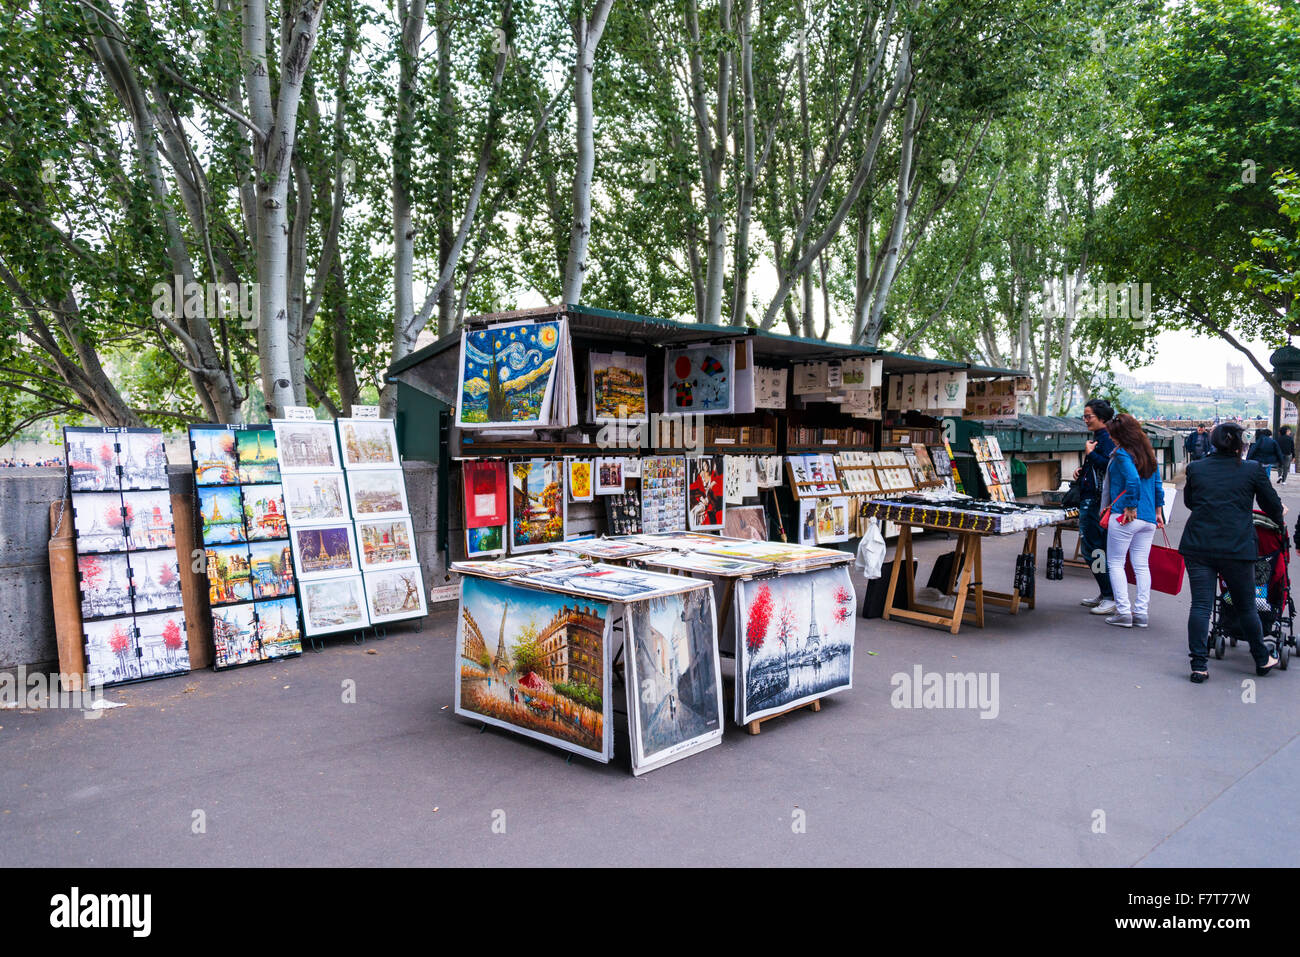 Stalls, booksellers along the Seine, cultural mile, Paris, Ile-de-France, France - Stock Image